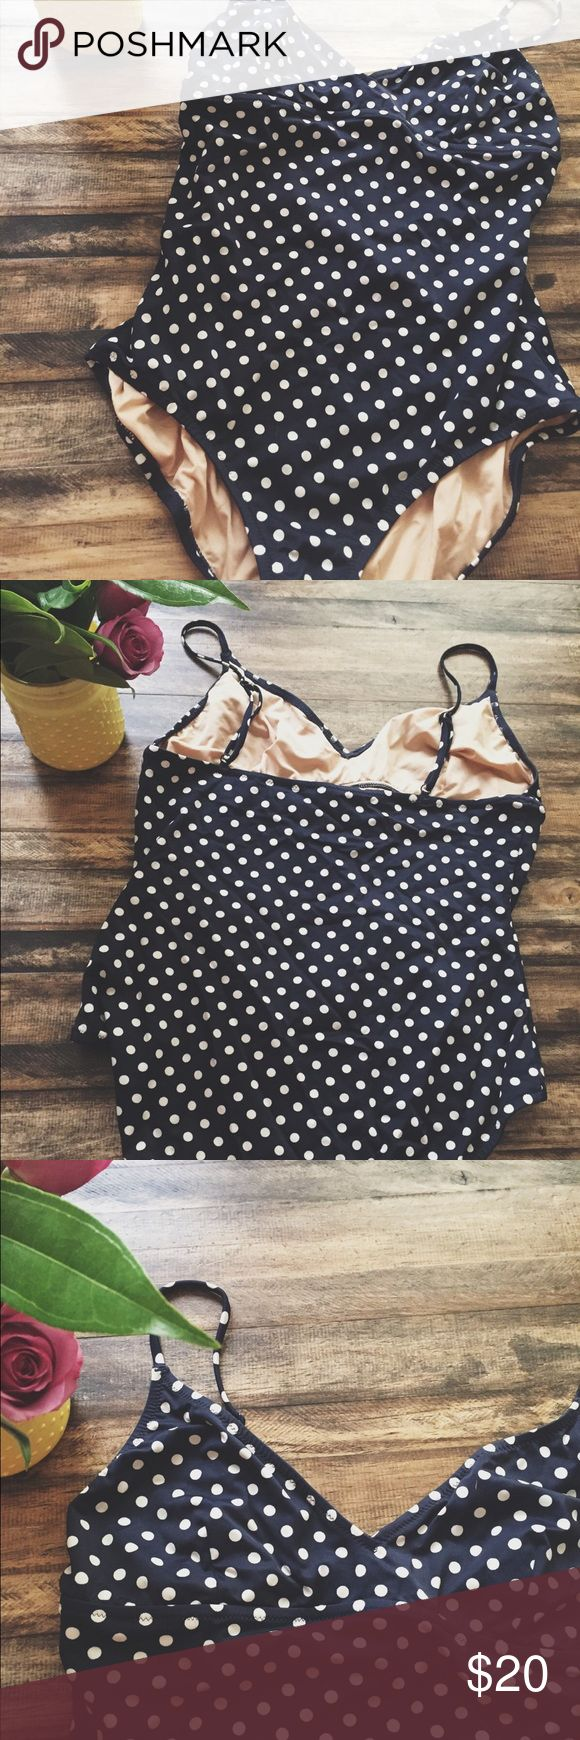 J. Crew Polka Dot One Piece Swimsuit Bought this a couple of seasons ago and only wore twice. It's in great condition and has a ton of life left in it. For reference I wear 36DDD and this fits perfectly. J. Crew Swim One Pieces